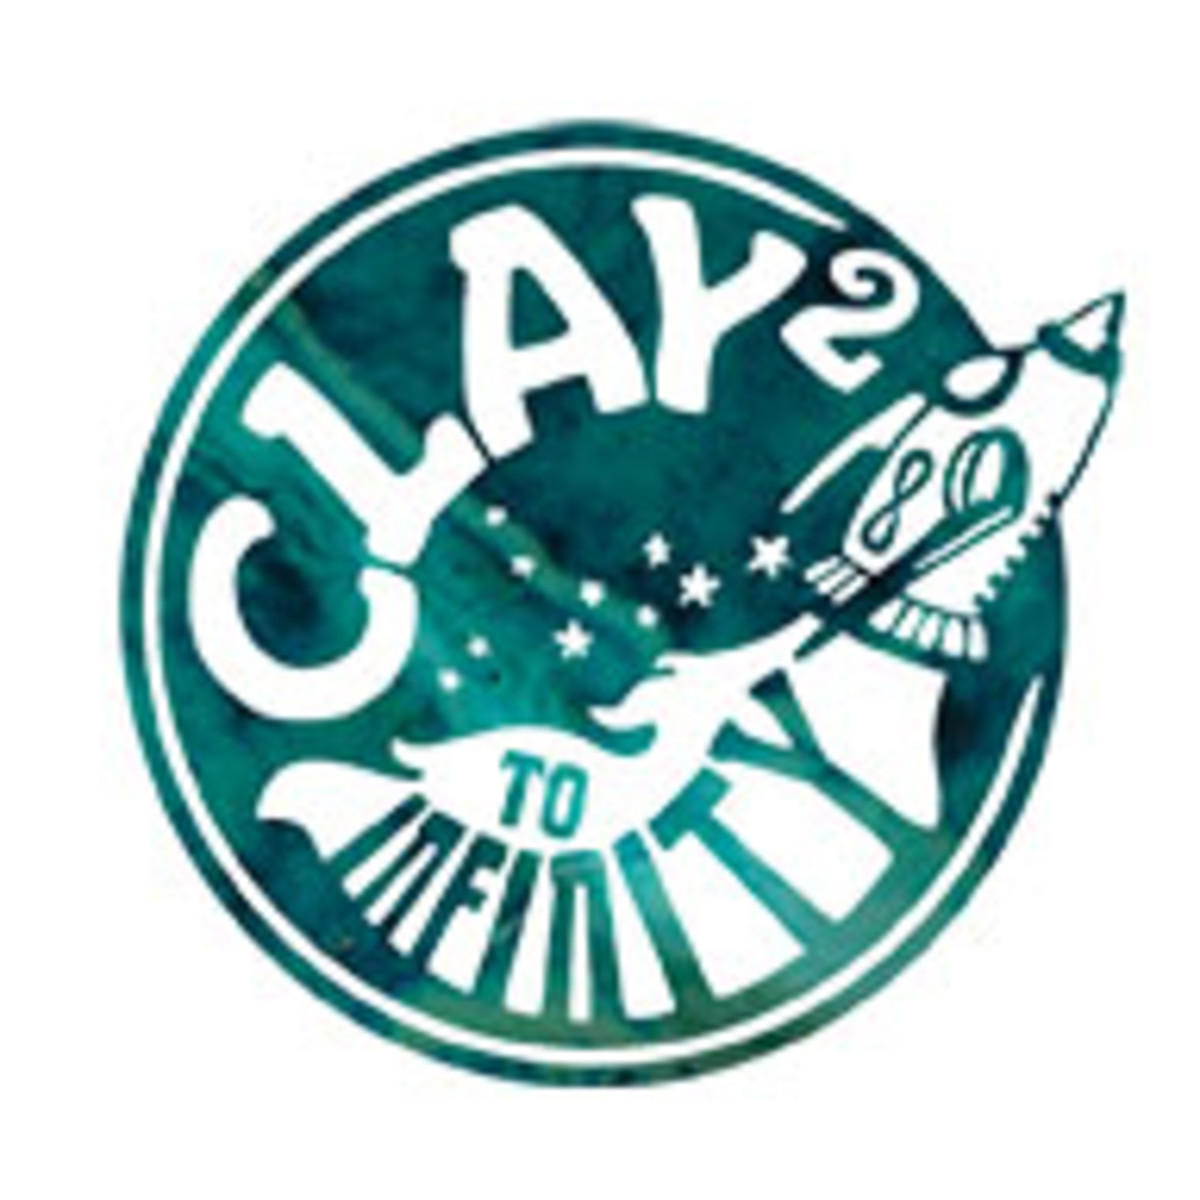 clay_squared_logo